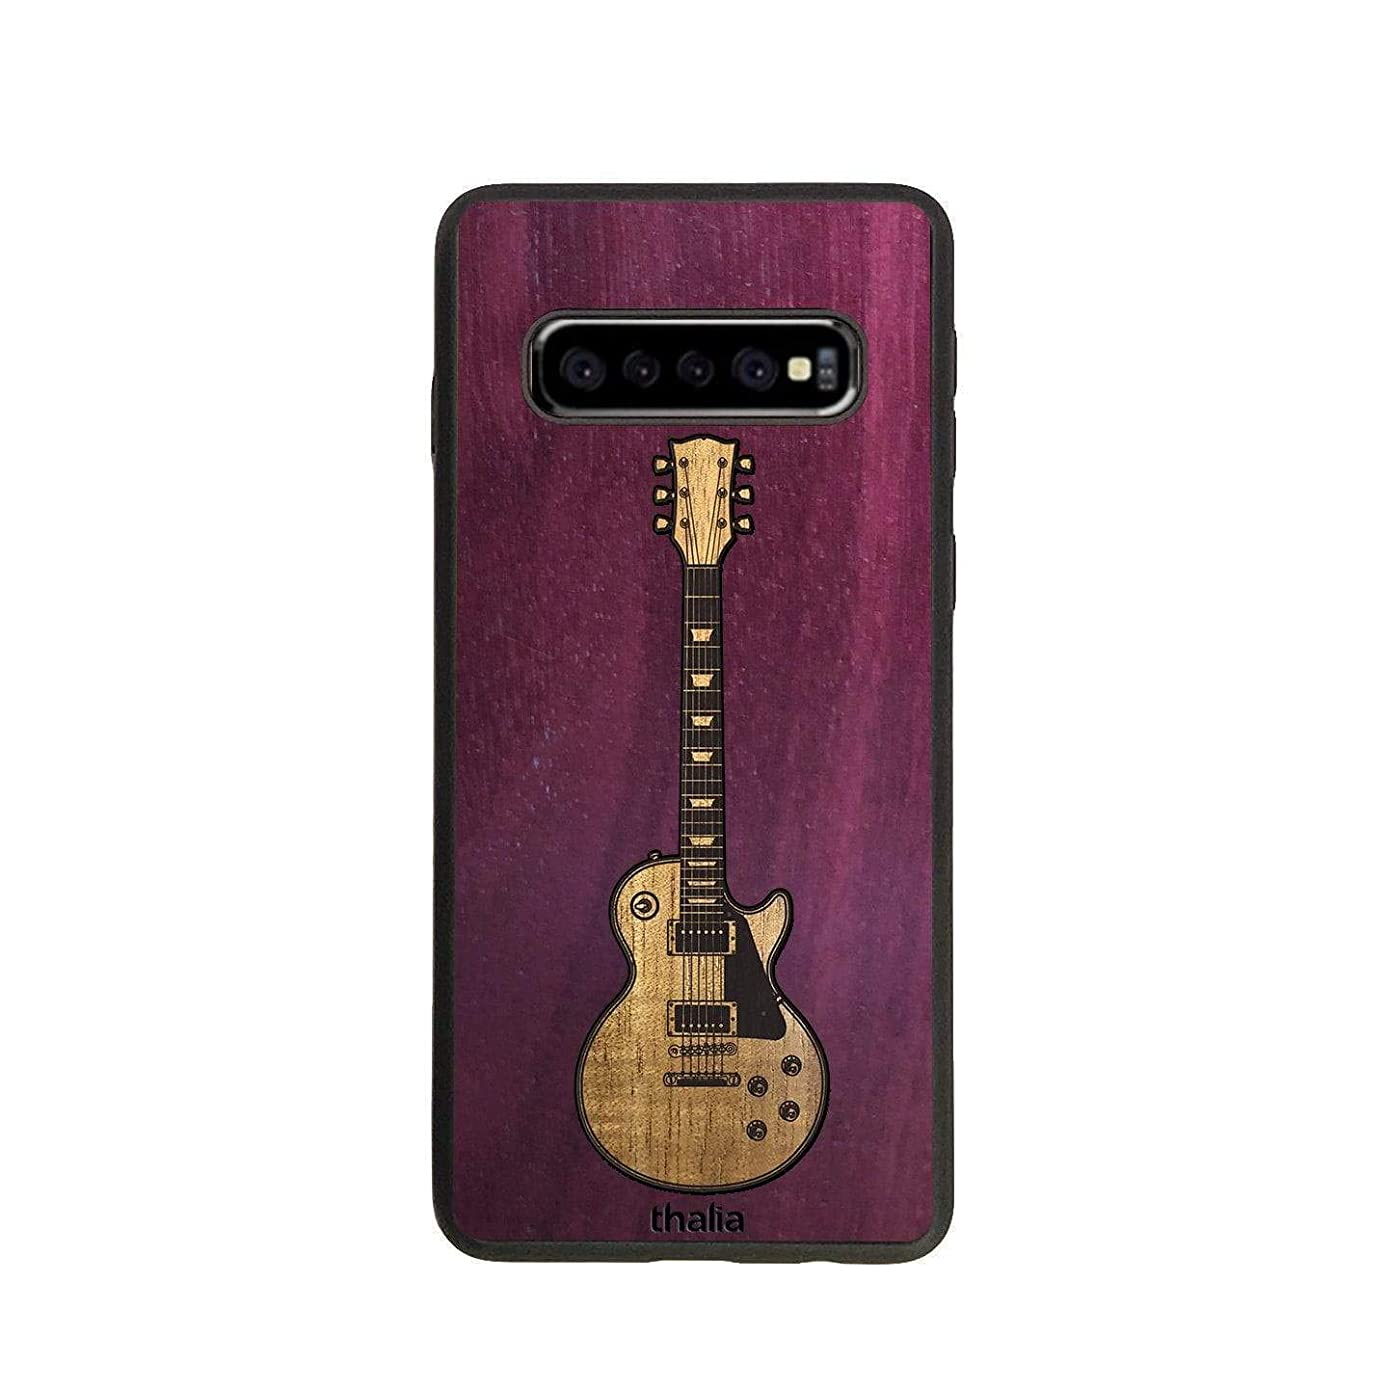 Purpleheart & Les Paul Hawaiian Koa Inlaid Guitar Phone Case | Thalia Exotic Wood Cases Samsung Galaxy S10